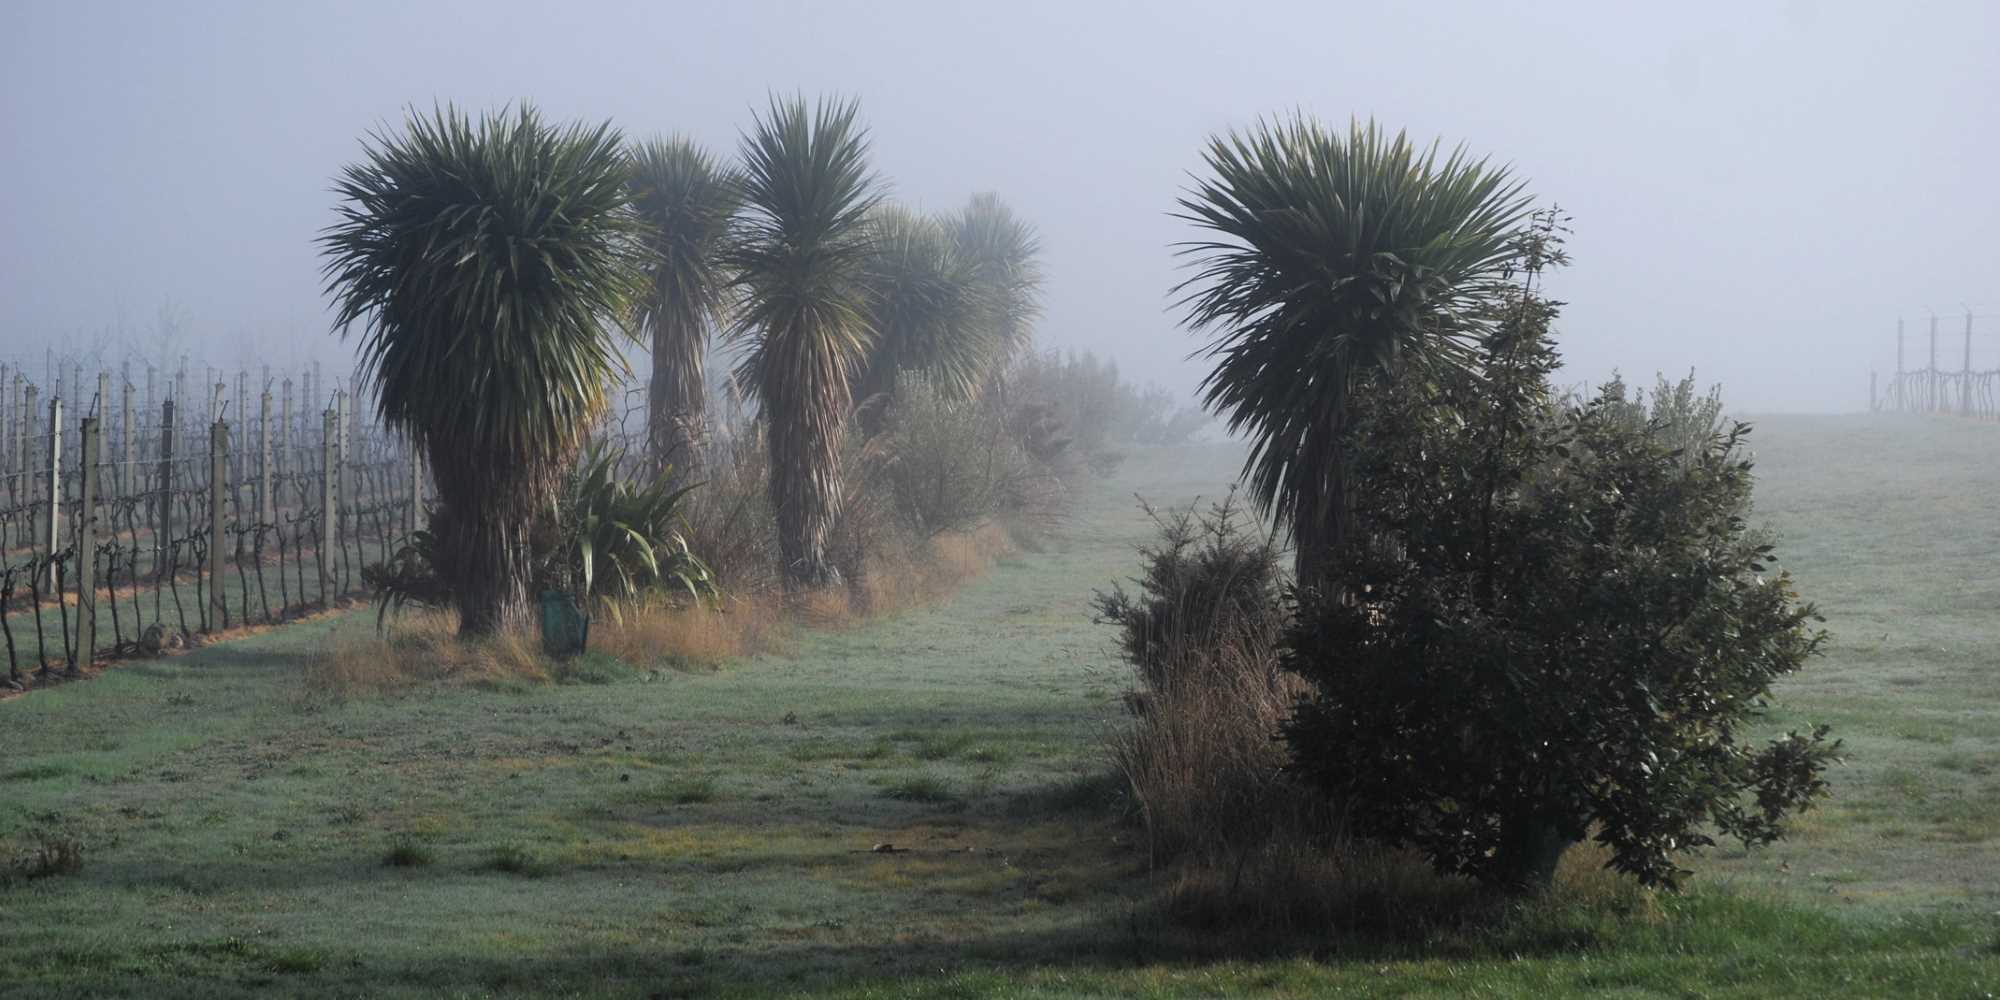 Natives in Mist